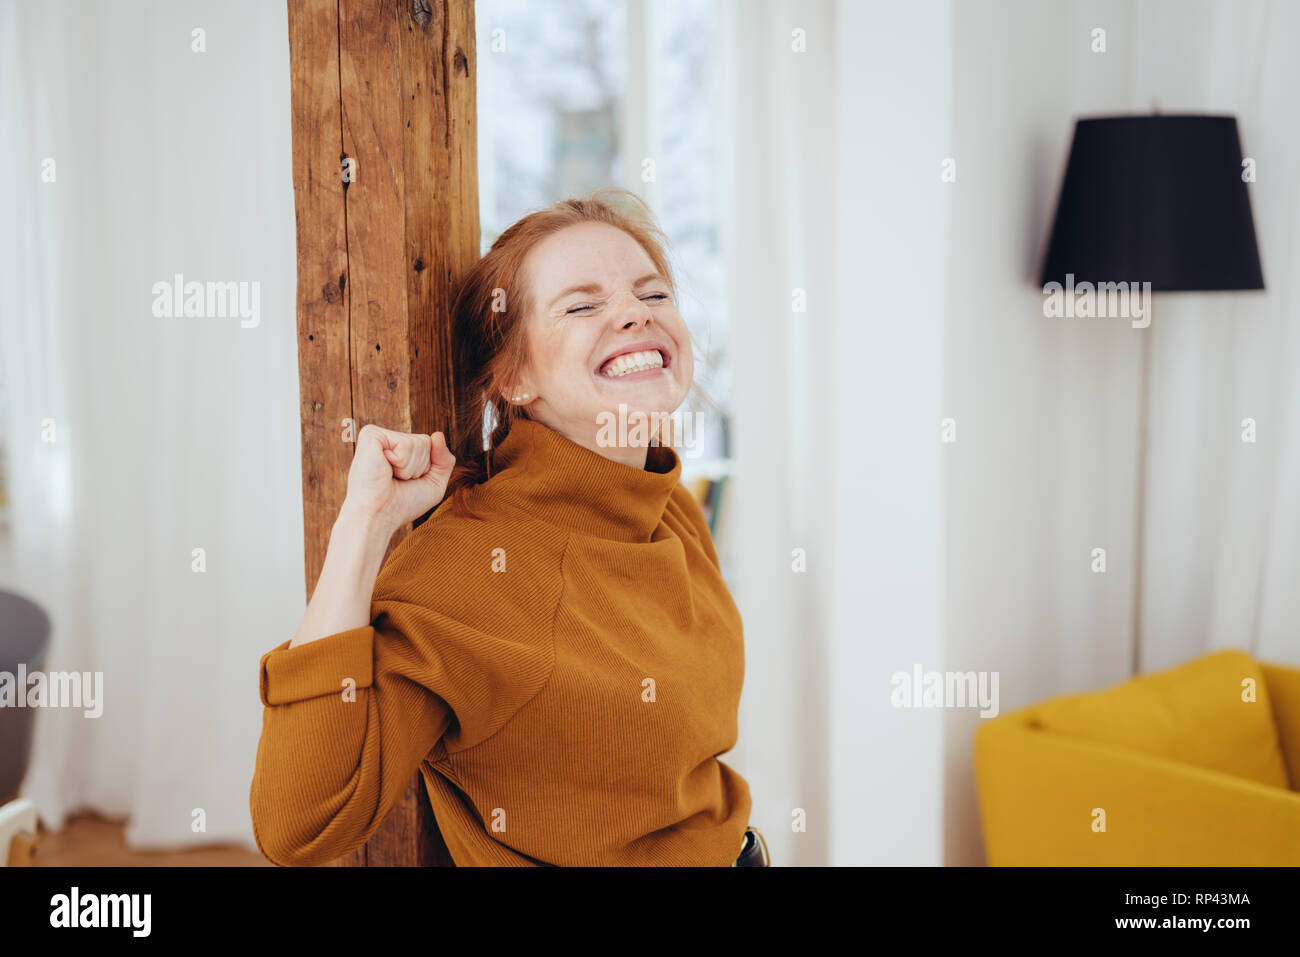 Excited young woman cheering with closed eyes and a big toothy grin clenching her fists in ecstasy as she leans on a wooden indoor pillar in her apart - Stock Image